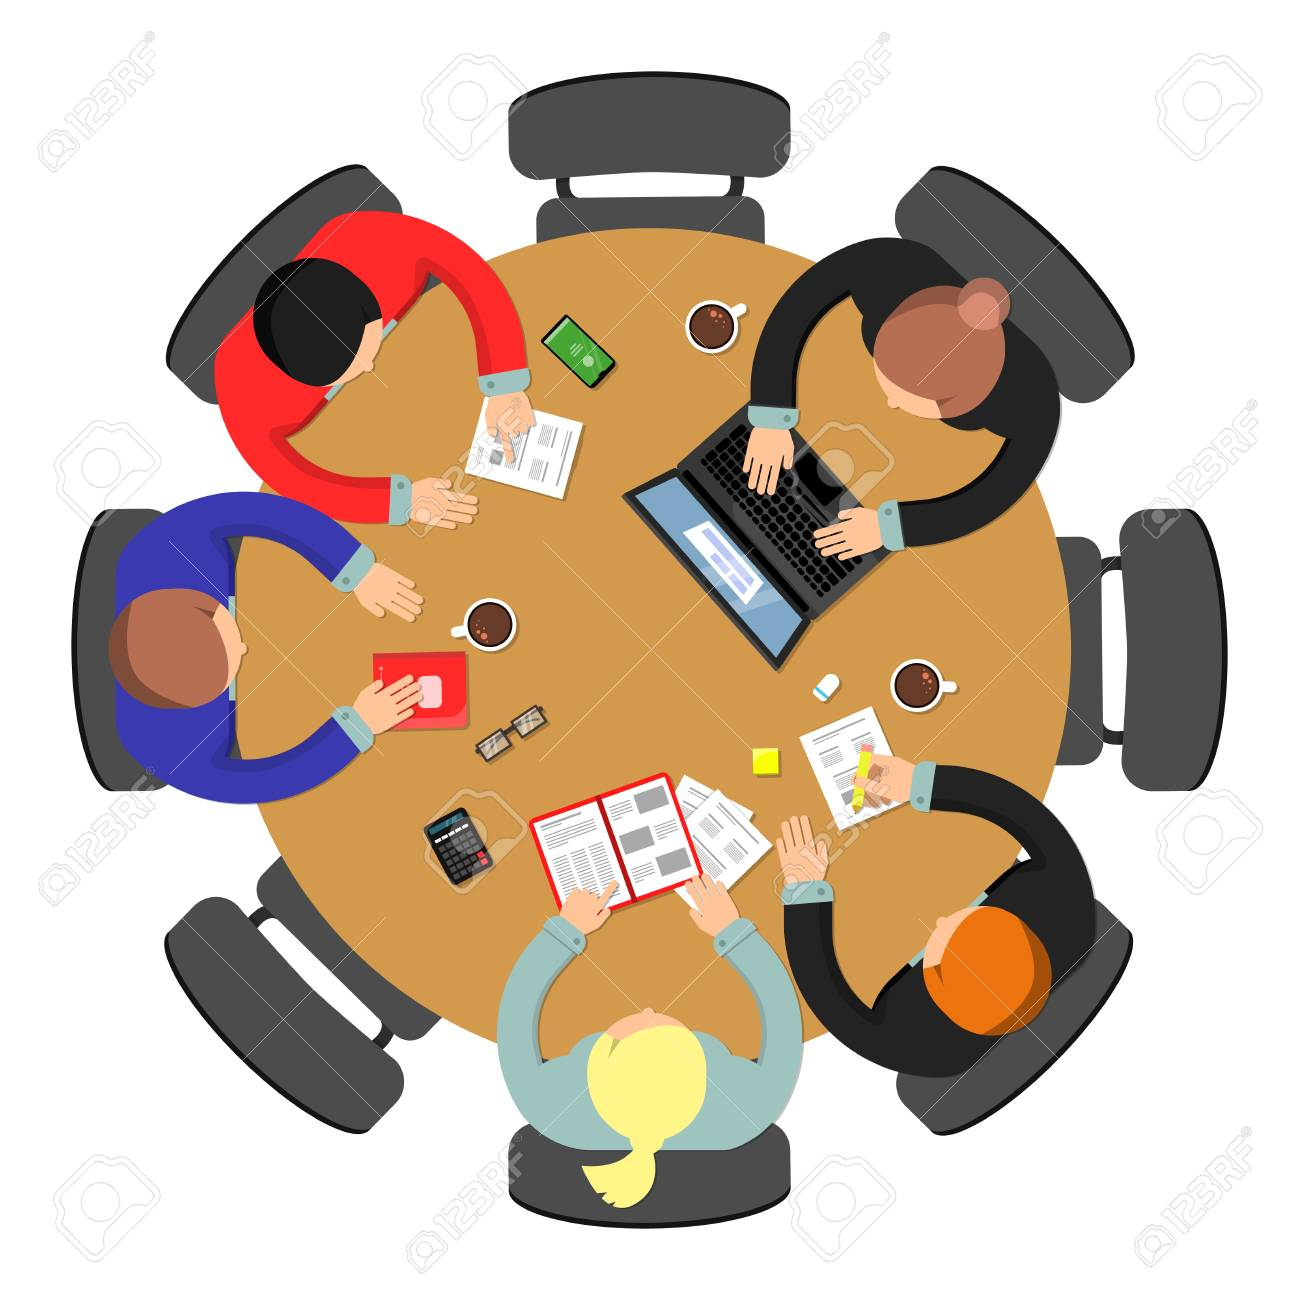 Office meeting top view. Conference group teamwork discussion at roundtable business vector concept. Illustration of office discussion group - 125640882